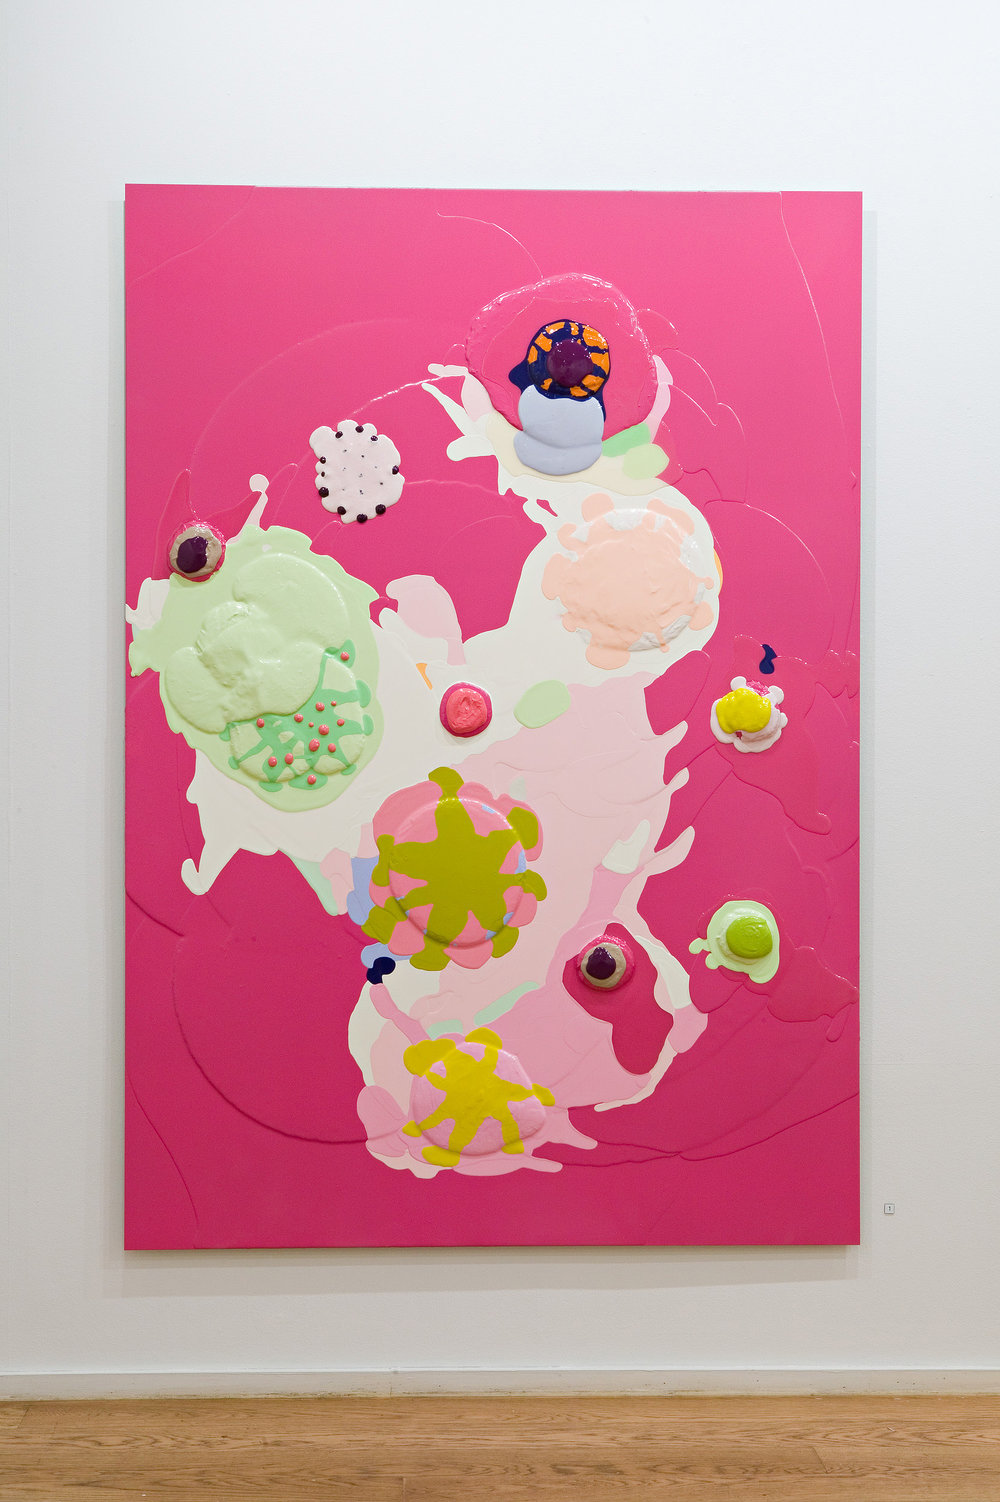 Happy Birthday Jack . 2005. Lacquer and epoxy on aluminium. 180 x 125 cm.